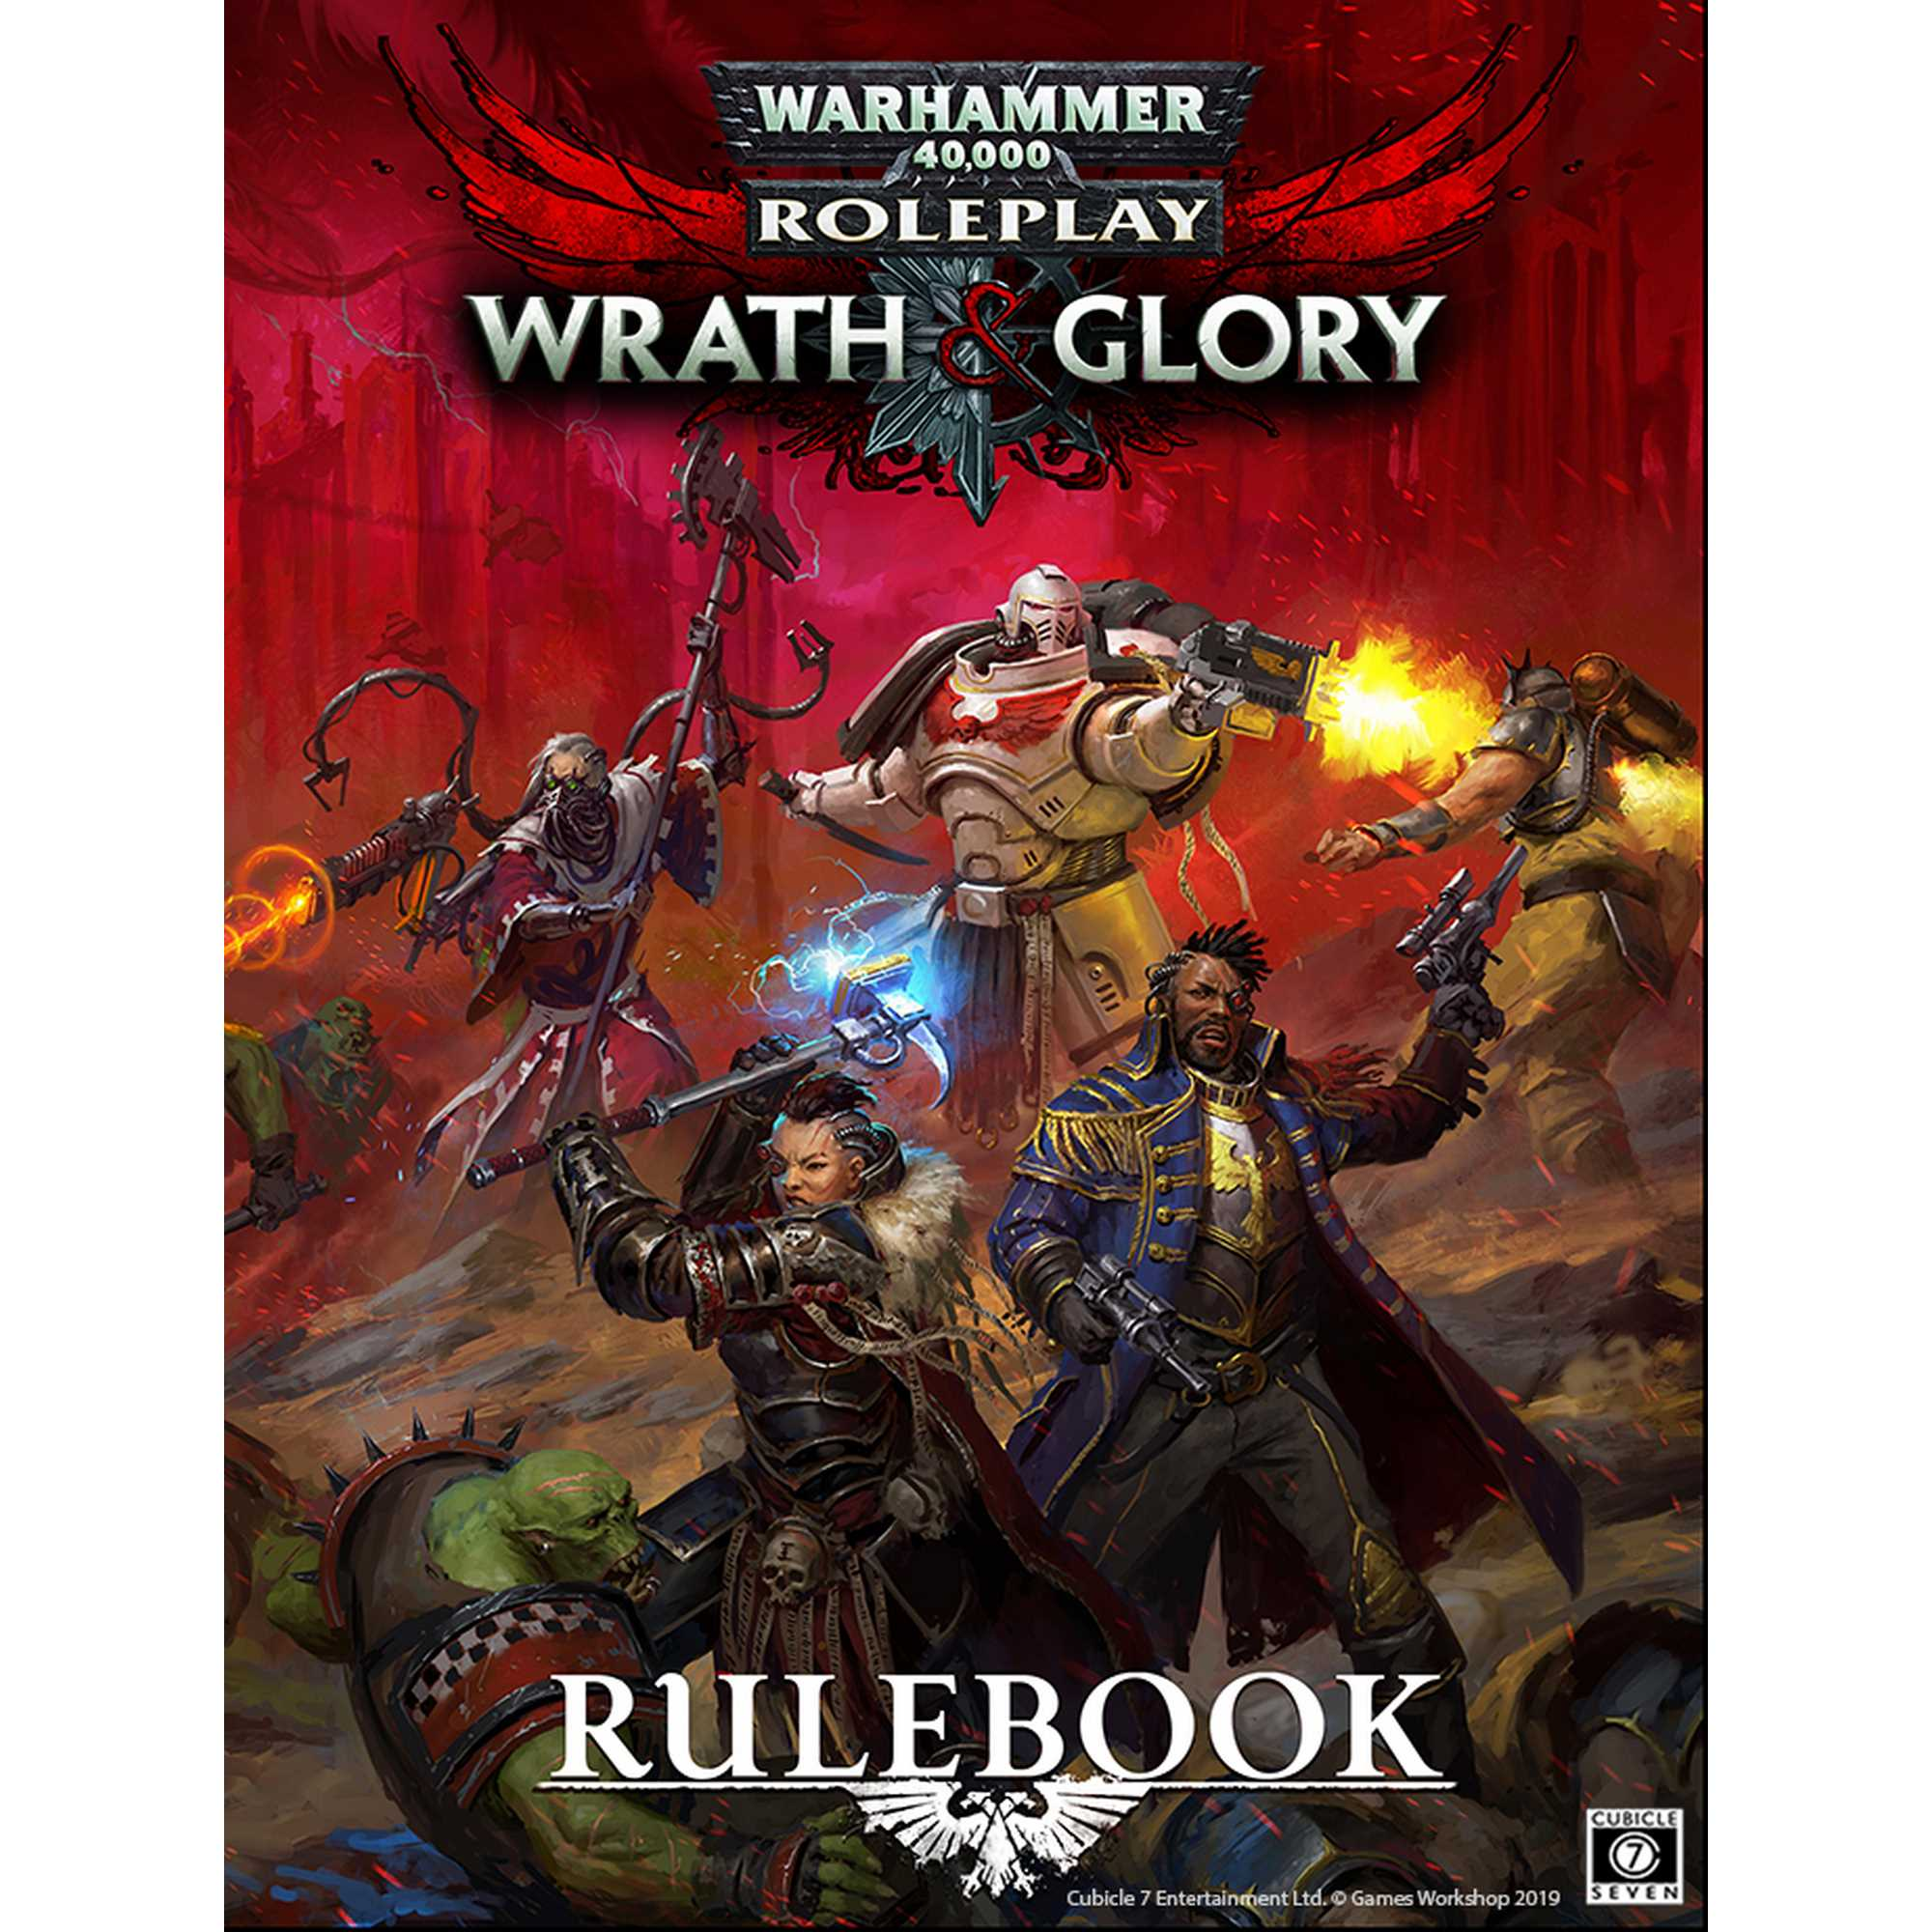 Wrath and Glory Core Rulebook: Warhammer 40k Role Playing Game